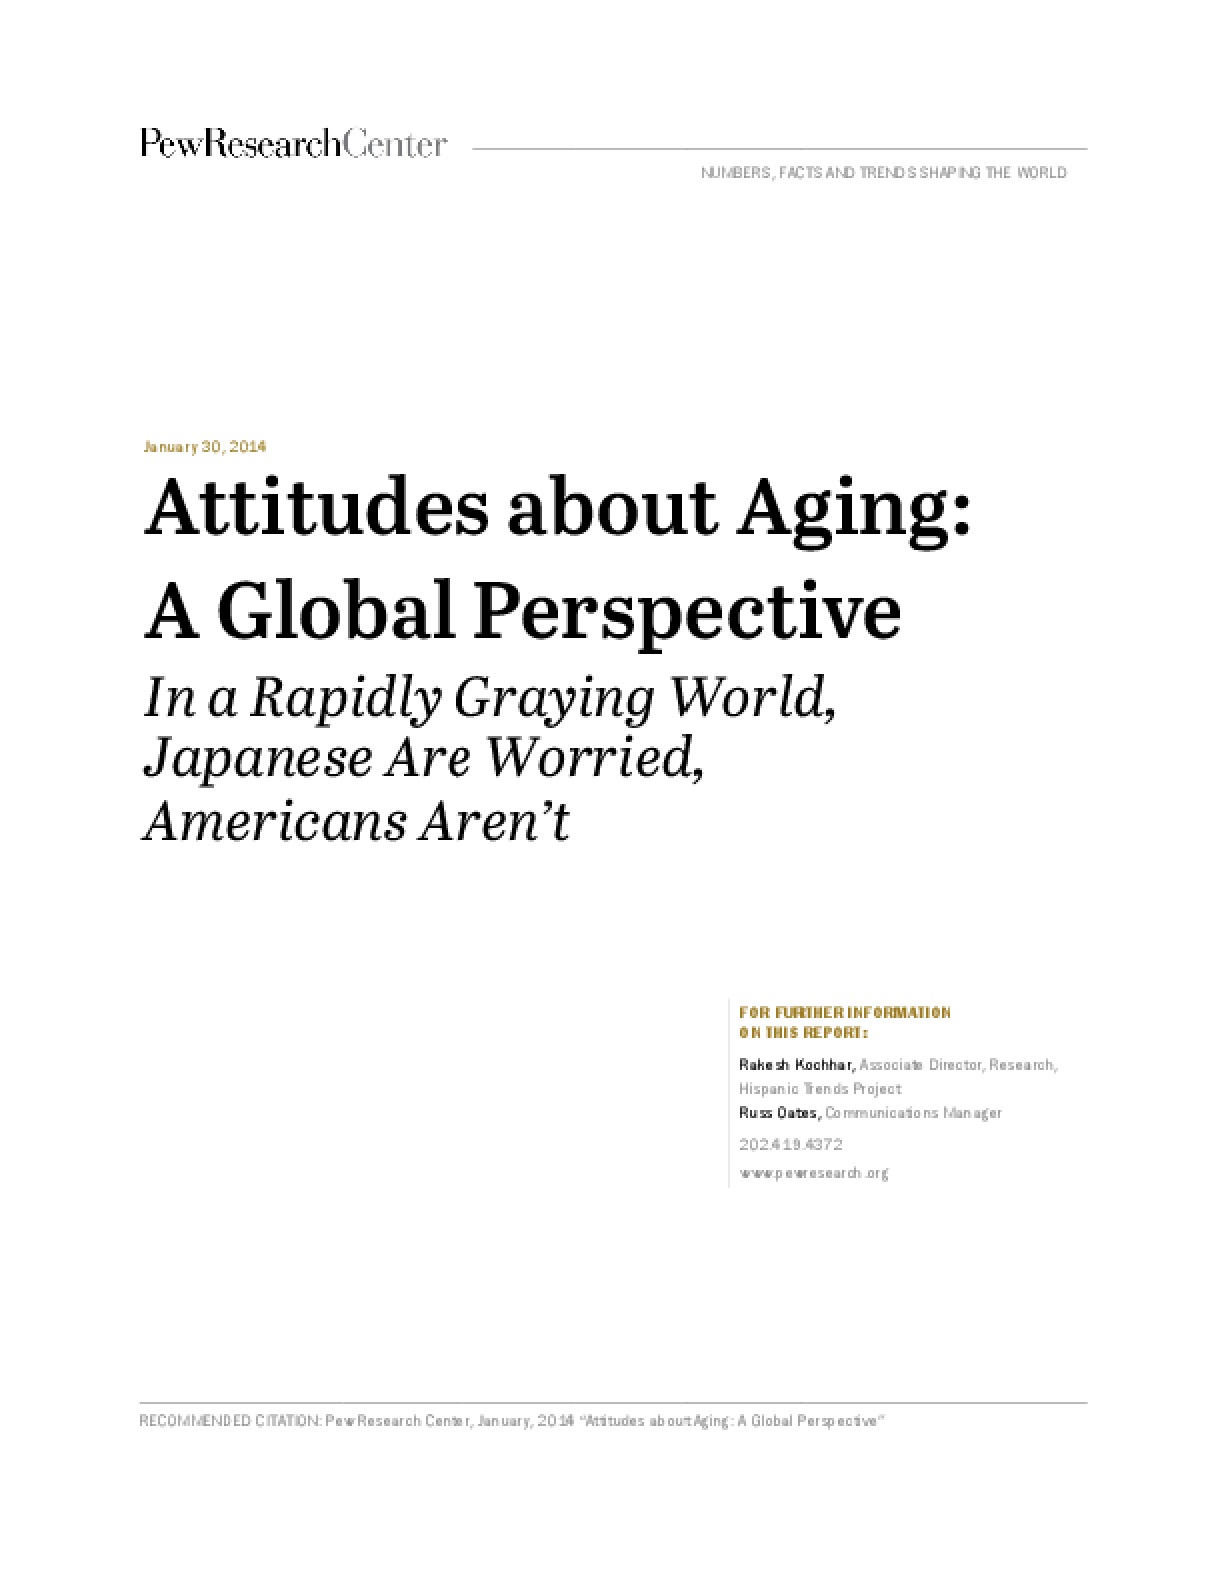 Attitudes About Aging: A Global Perspective